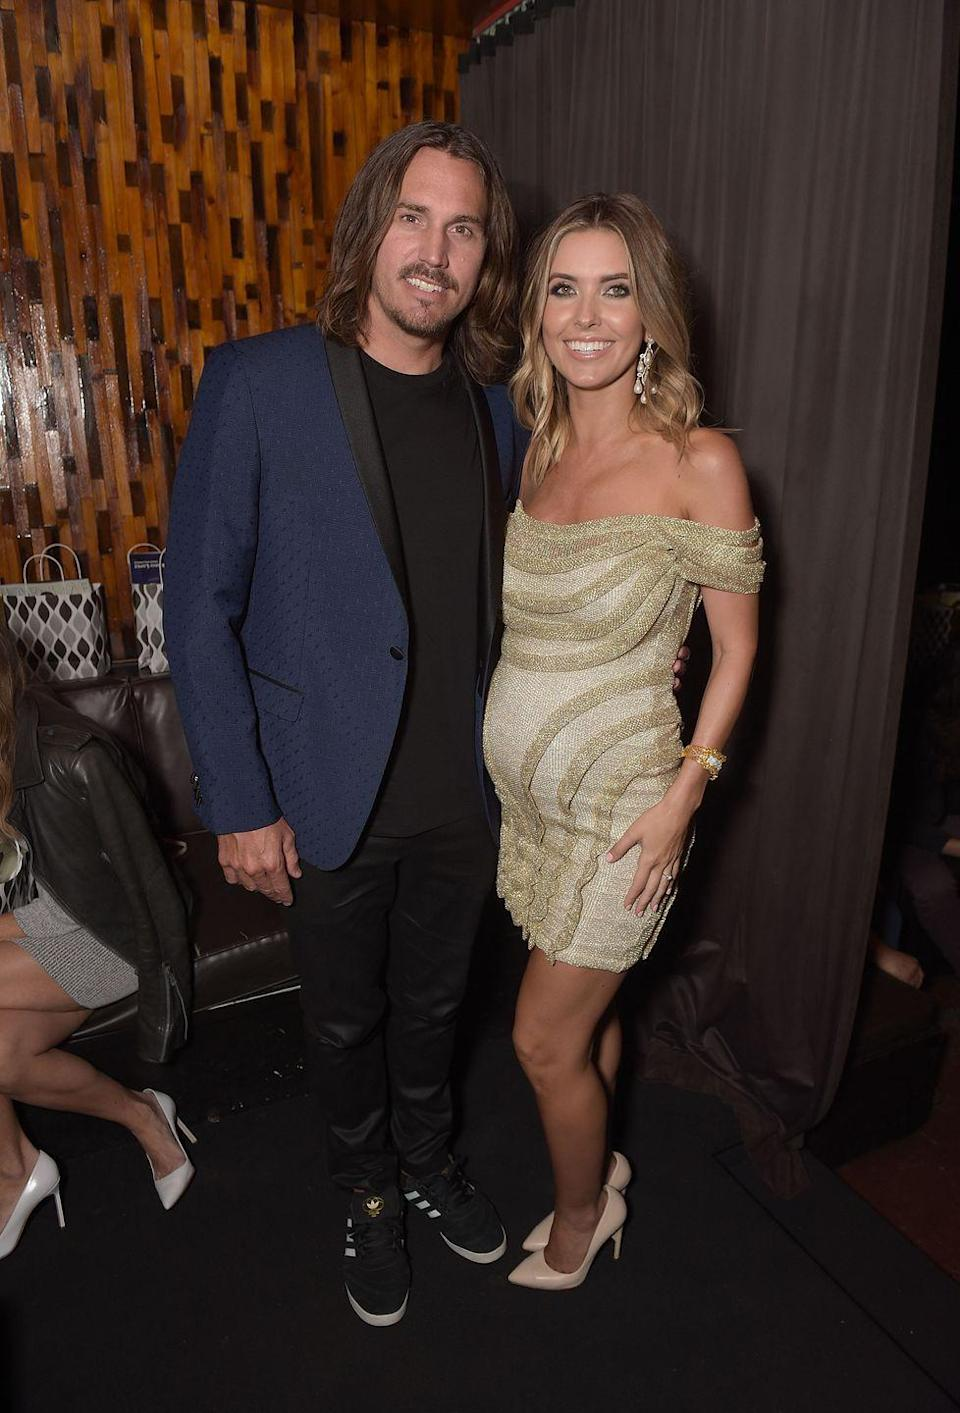 """<p>Before <em>T</em><em>he</em> <em>Hills </em>star and the professional BMX biker's Hawaii wedding in November 2016, they welcomed a daughter named Kirra. But after less than a year of marriage, <a href=""""https://people.com/tv/audrina-patridge-corey-bohan-finalize-divorce/"""" rel=""""nofollow noopener"""" target=""""_blank"""" data-ylk=""""slk:Audrina filed"""" class=""""link rapid-noclick-resp"""">Audrina filed</a> for a divorce and a temporary restraining order from Corey, citing an alleged violent outburst in the court documents.</p>"""